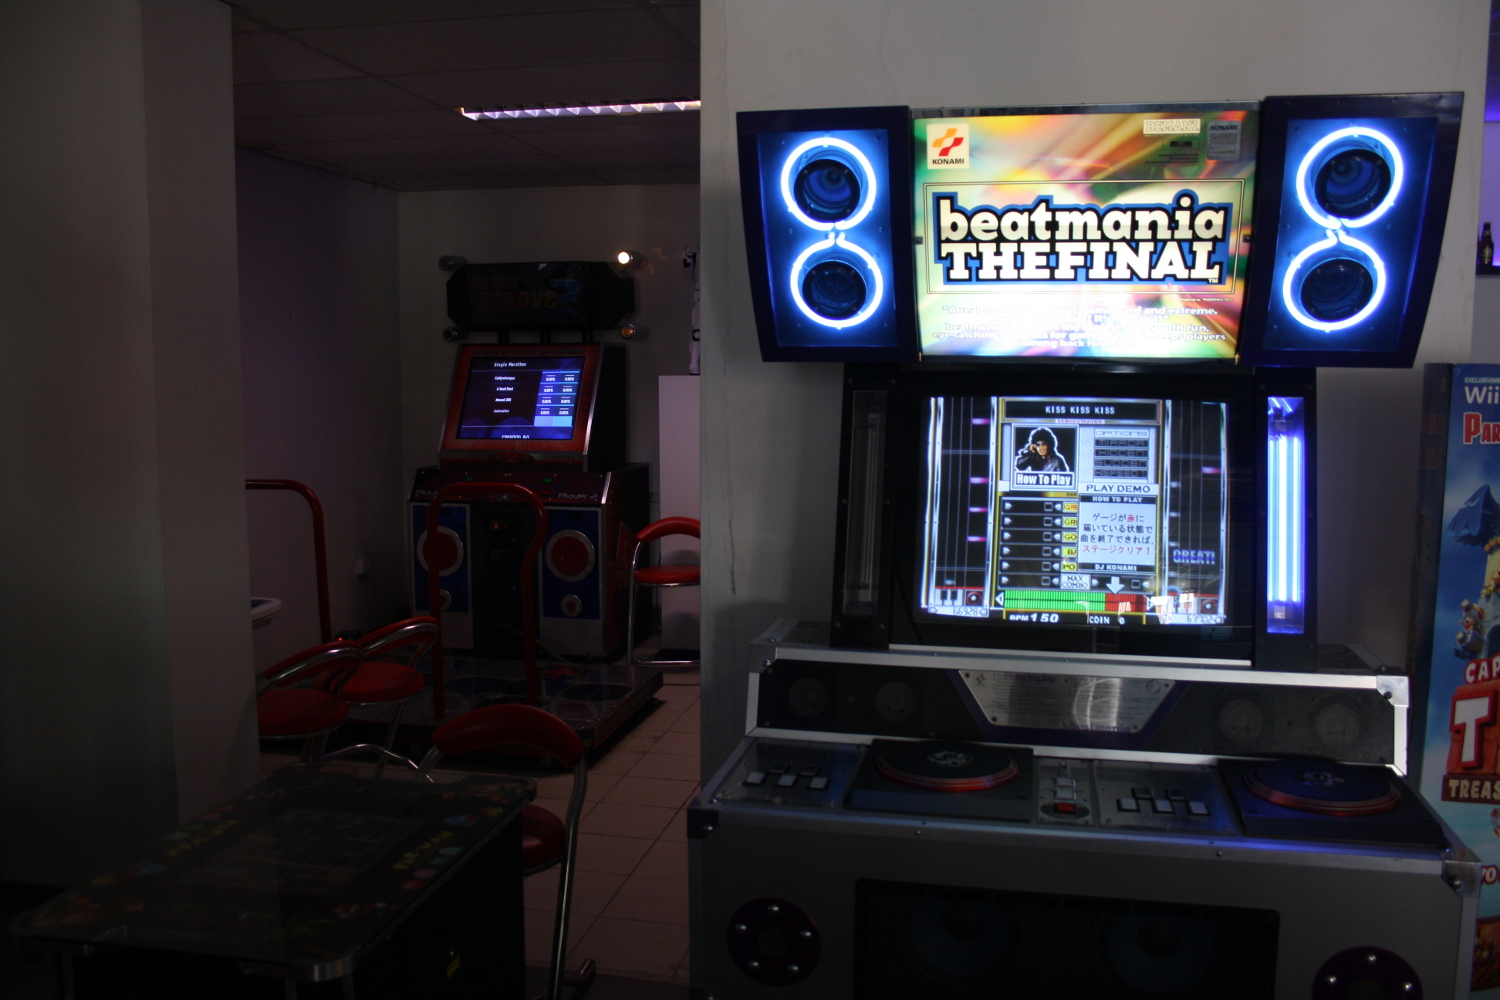 beatmania and ITG